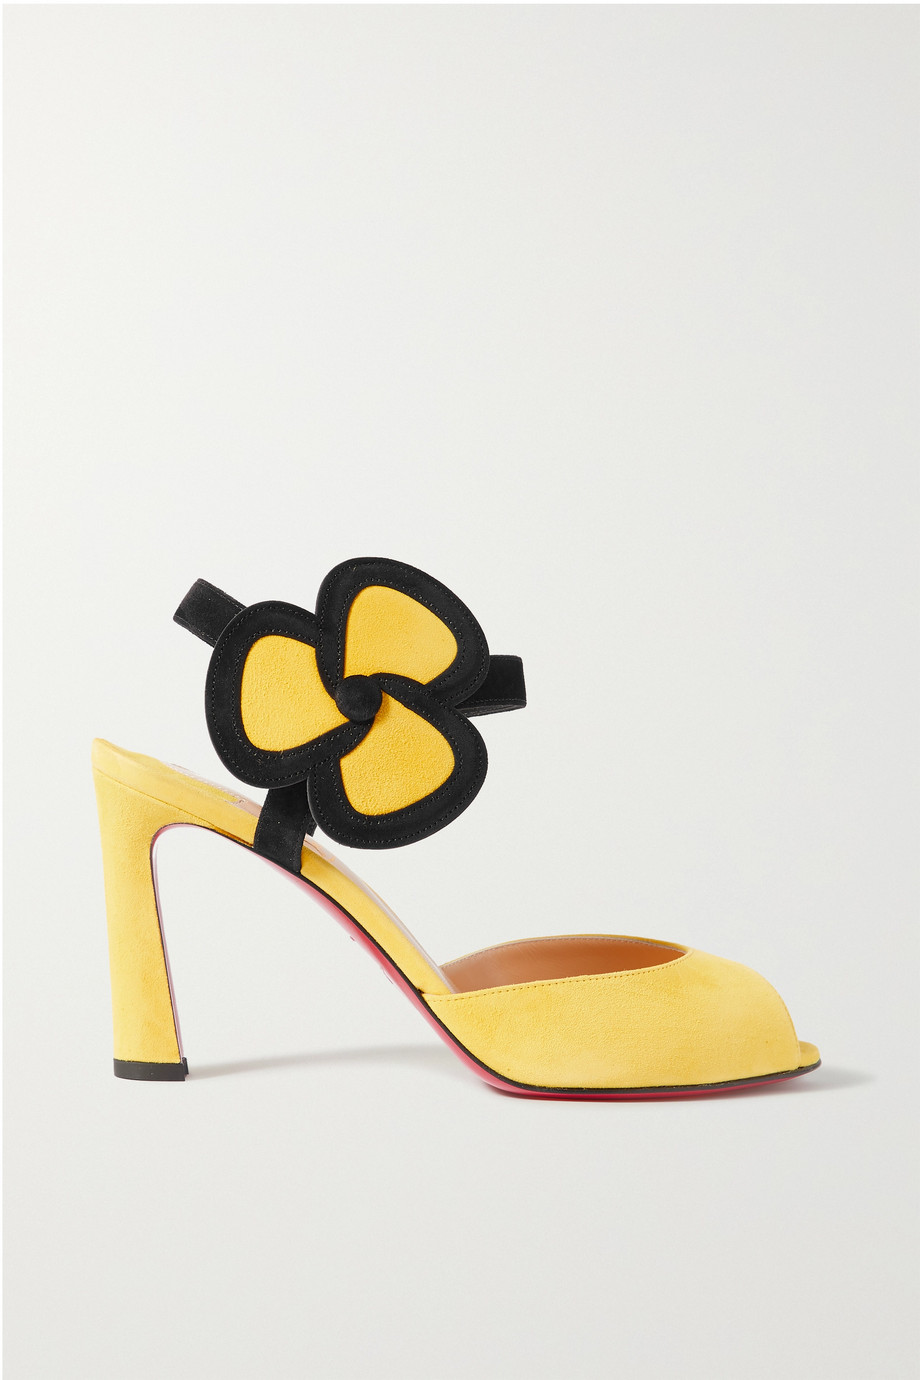 Christian Louboutin Pansy 85 two-tone suede sandals